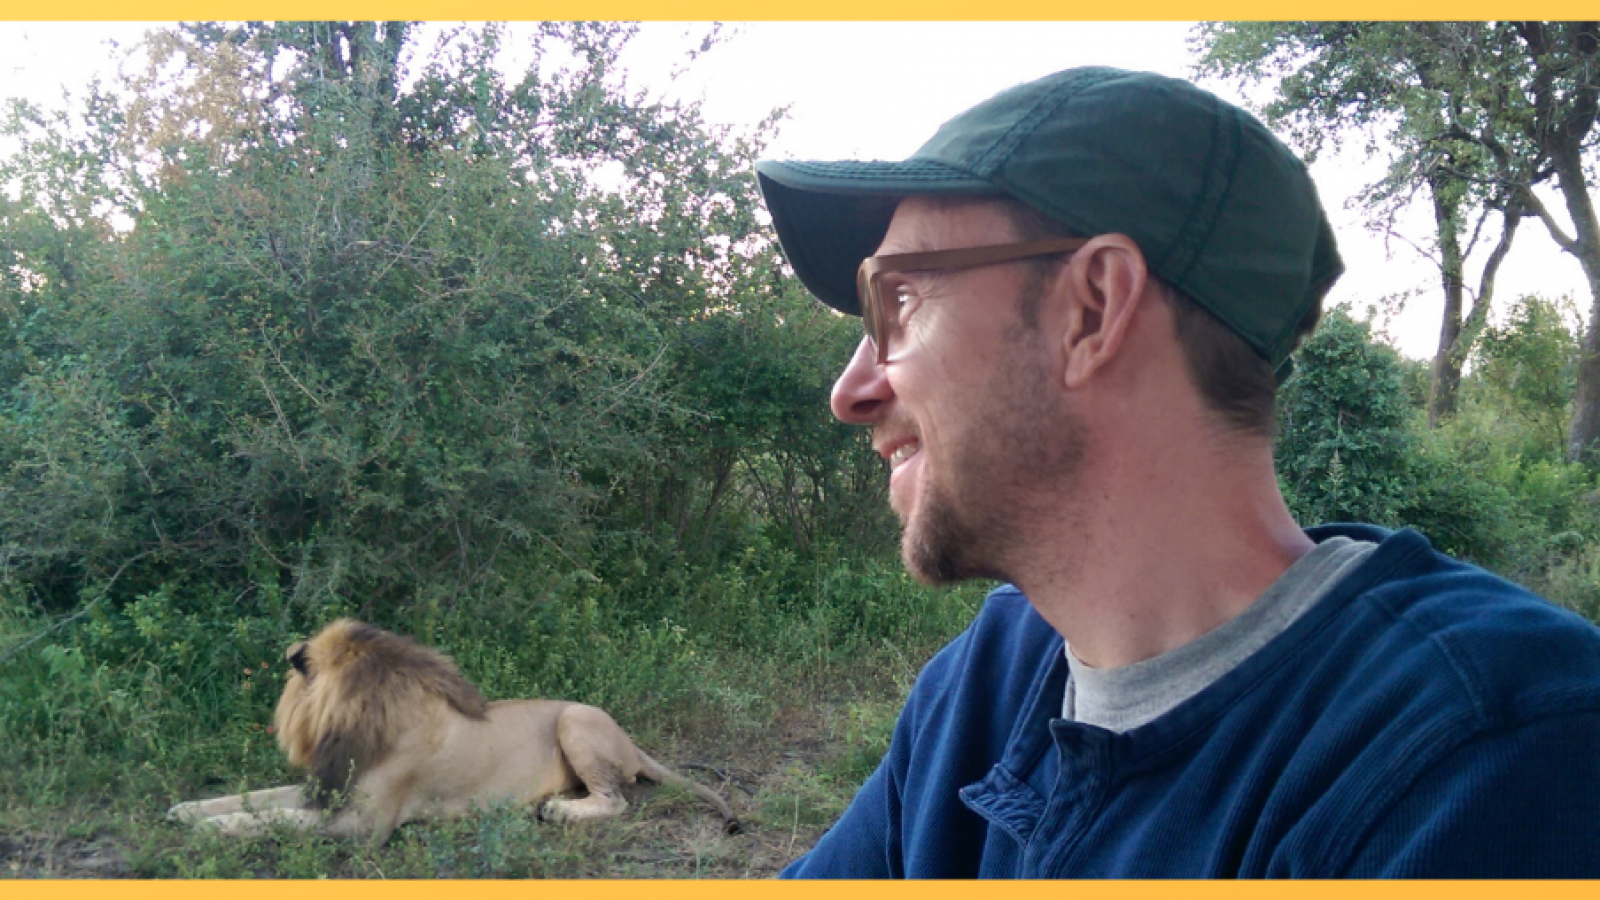 Tim on safari in S. Africa - observing sleeping lion